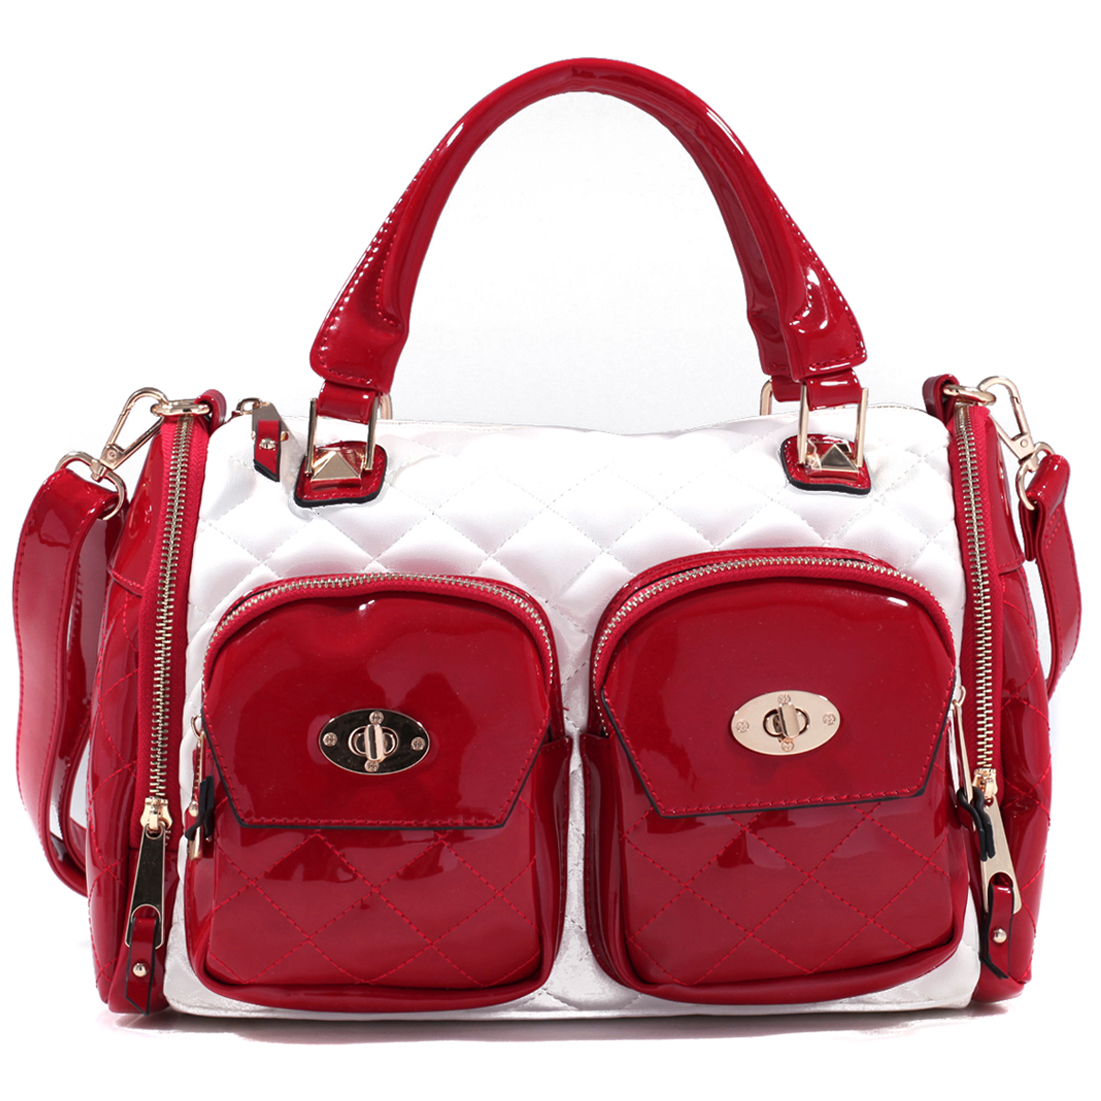 Quilted Patent Twist Lock Bag with Adjustable Removable Shoulder Strap